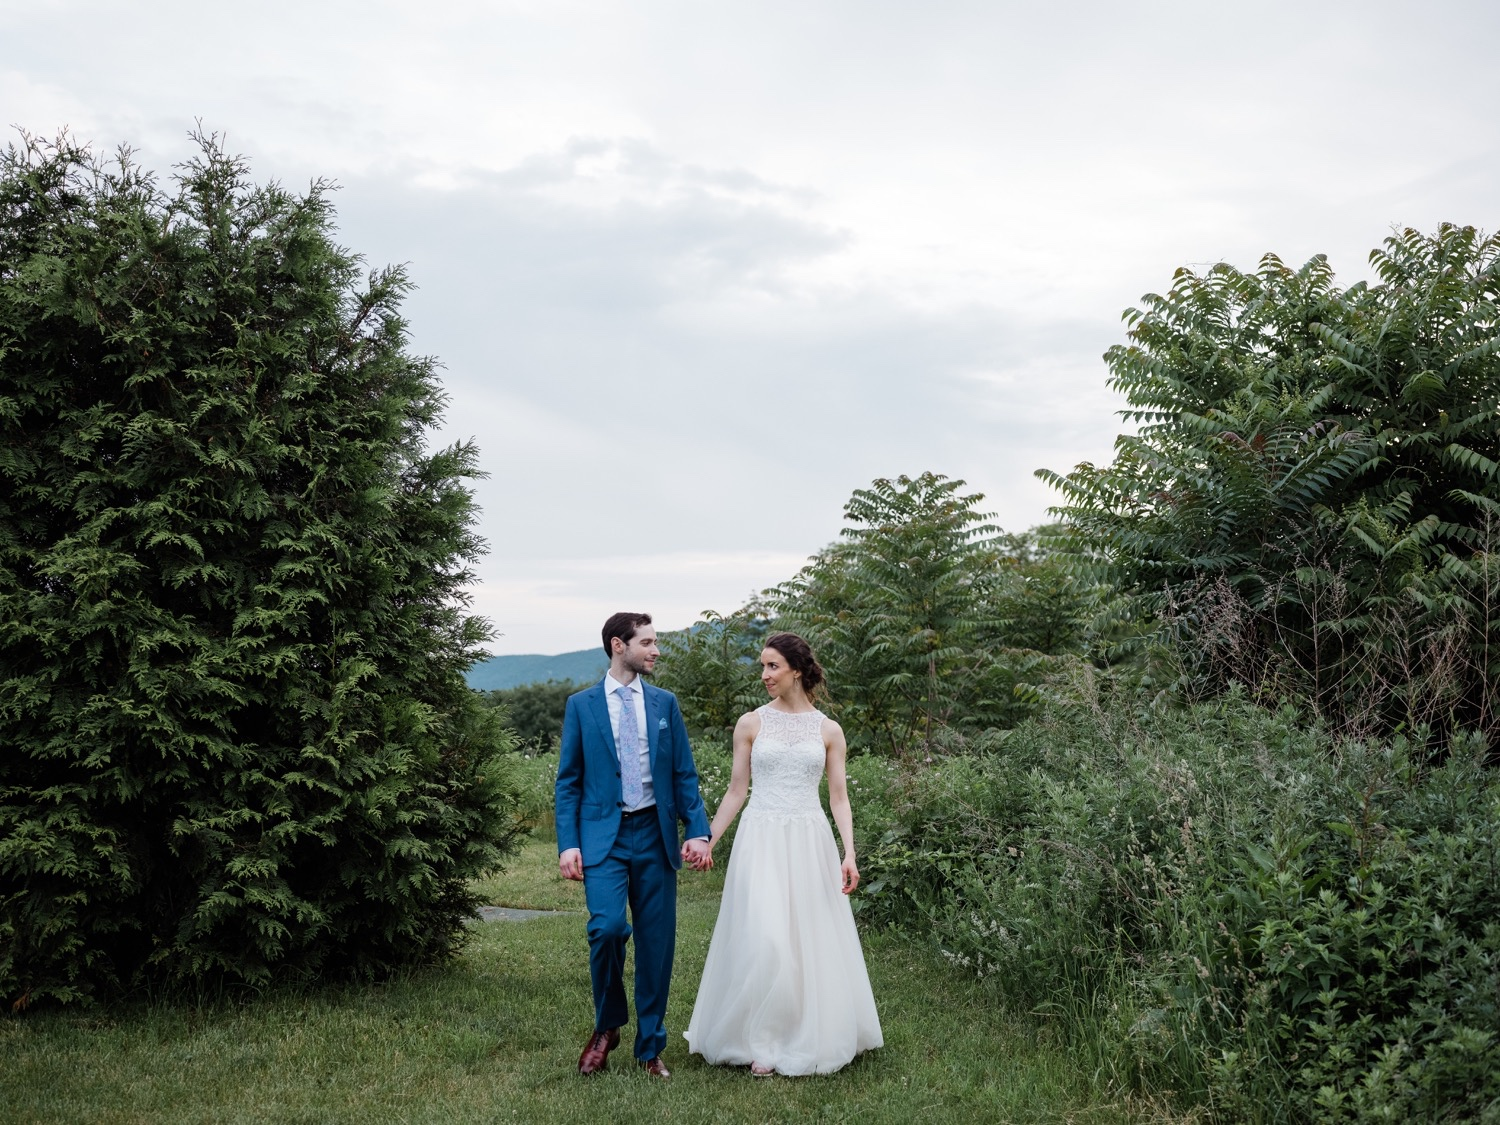 The Garrison Wedding, The Garrison venue, Hudson Valley wedding, hudson valley wedding photographer, catskills wedding photographer, the garrison wedding photos, best catskills wedding photographer, wedding poses, wedding photo inspiration, bride and groom ideas, wedding photo ideas